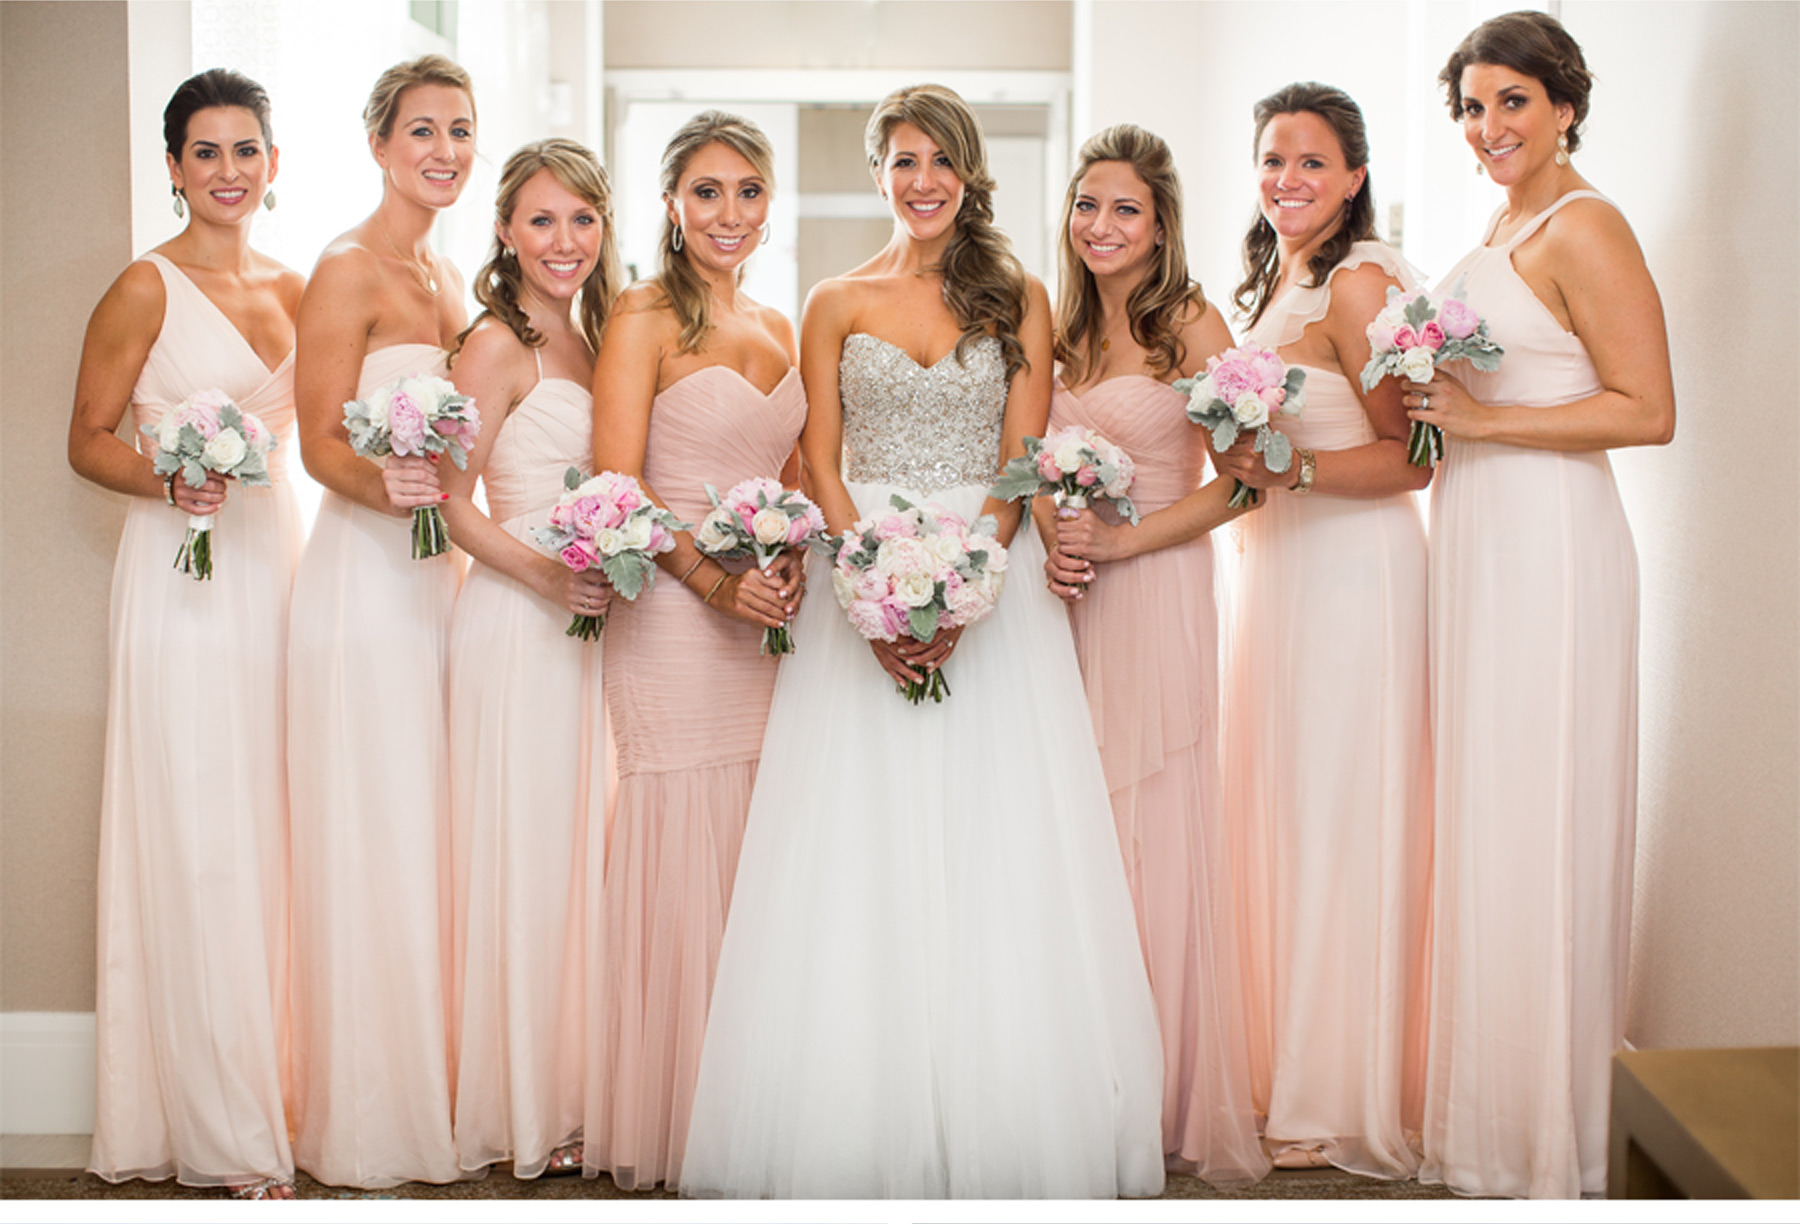 Dress sparkles bridesmaid dresses bride groom rose gold wedding